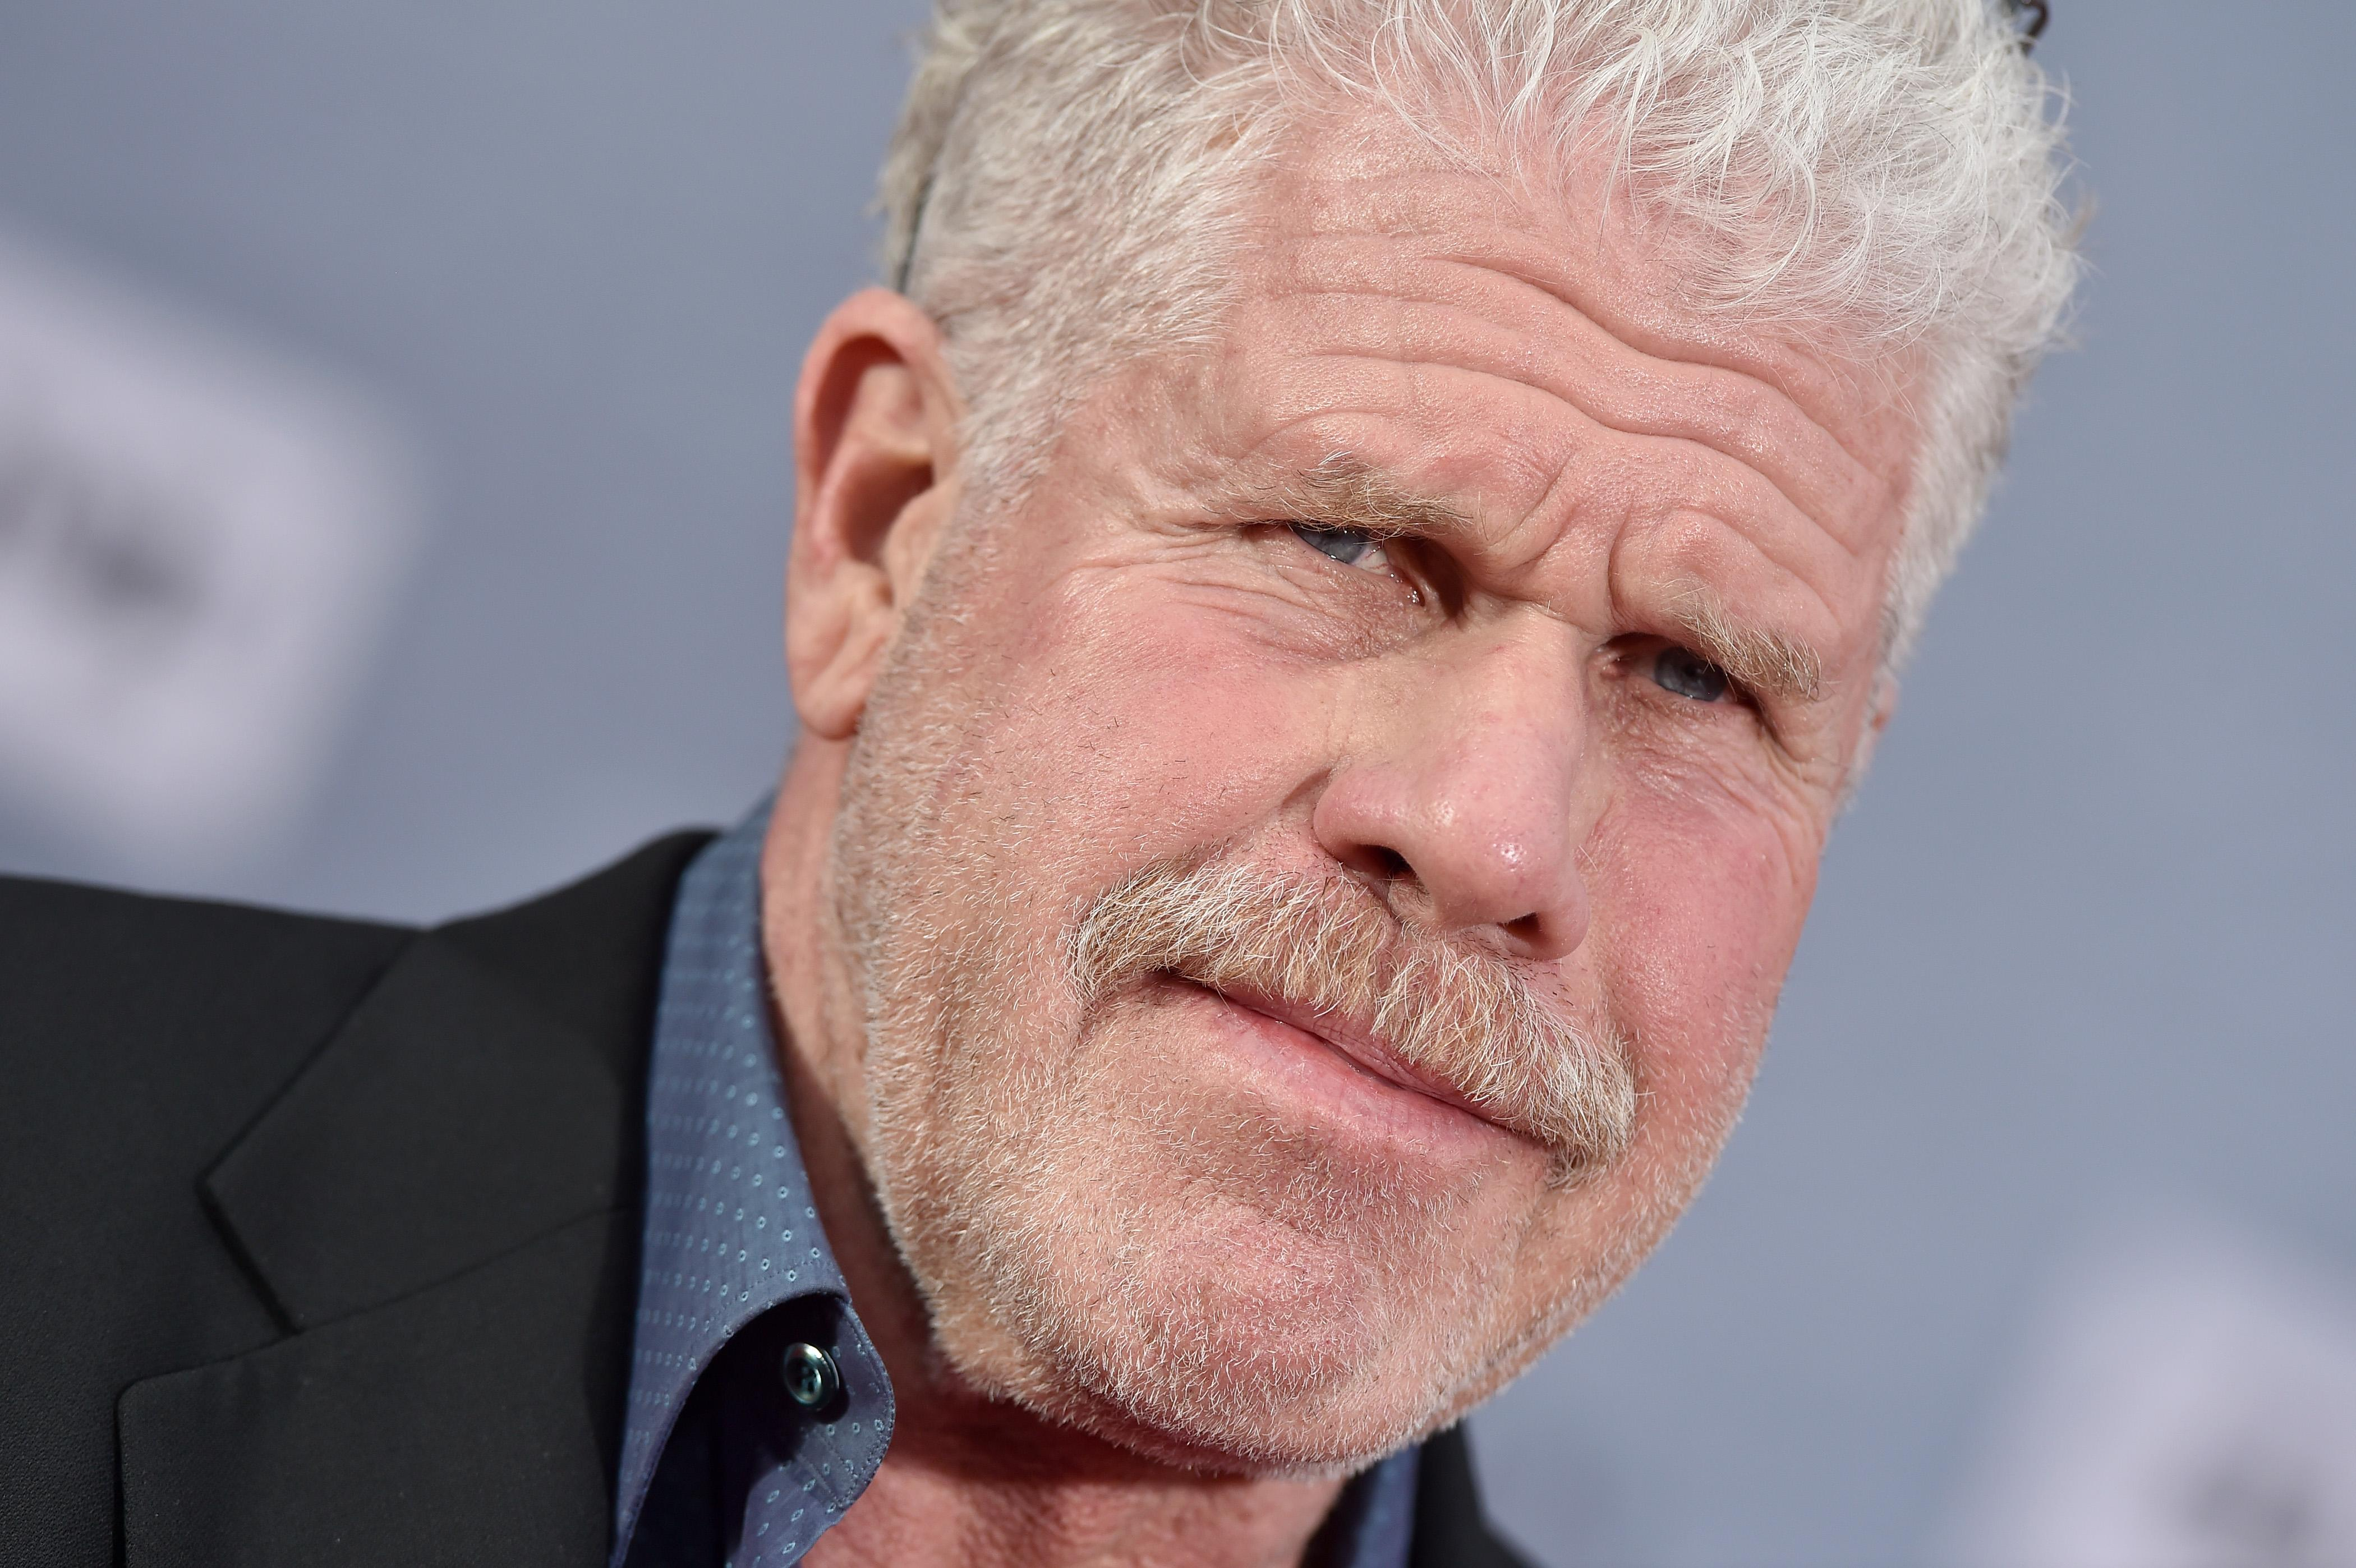 Ron Perlman reverses Georgia production boycott thanks to Stacey Abrams: 'I can't wait to visit'